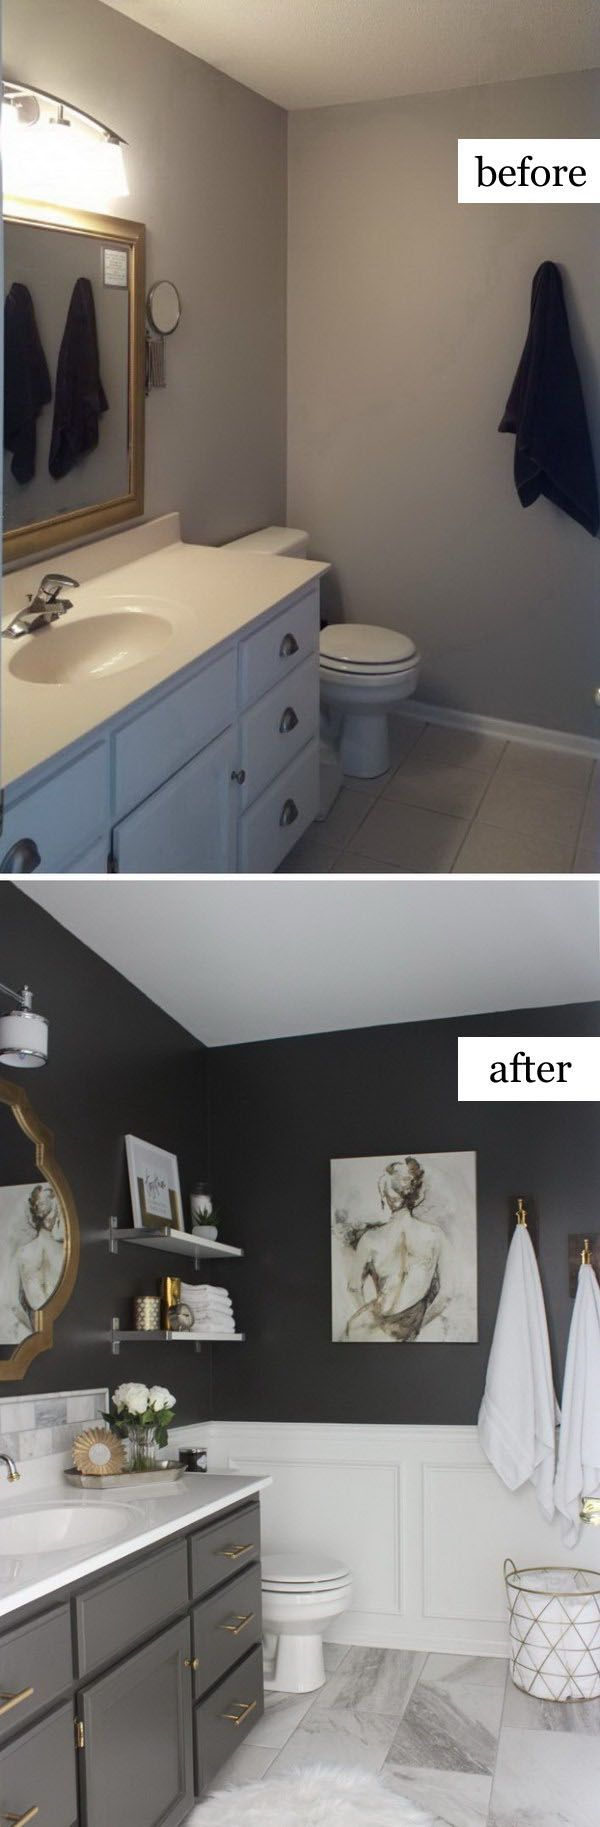 Small Bathroom Design Pinterest best 25+ small bathroom makeovers ideas only on pinterest | small